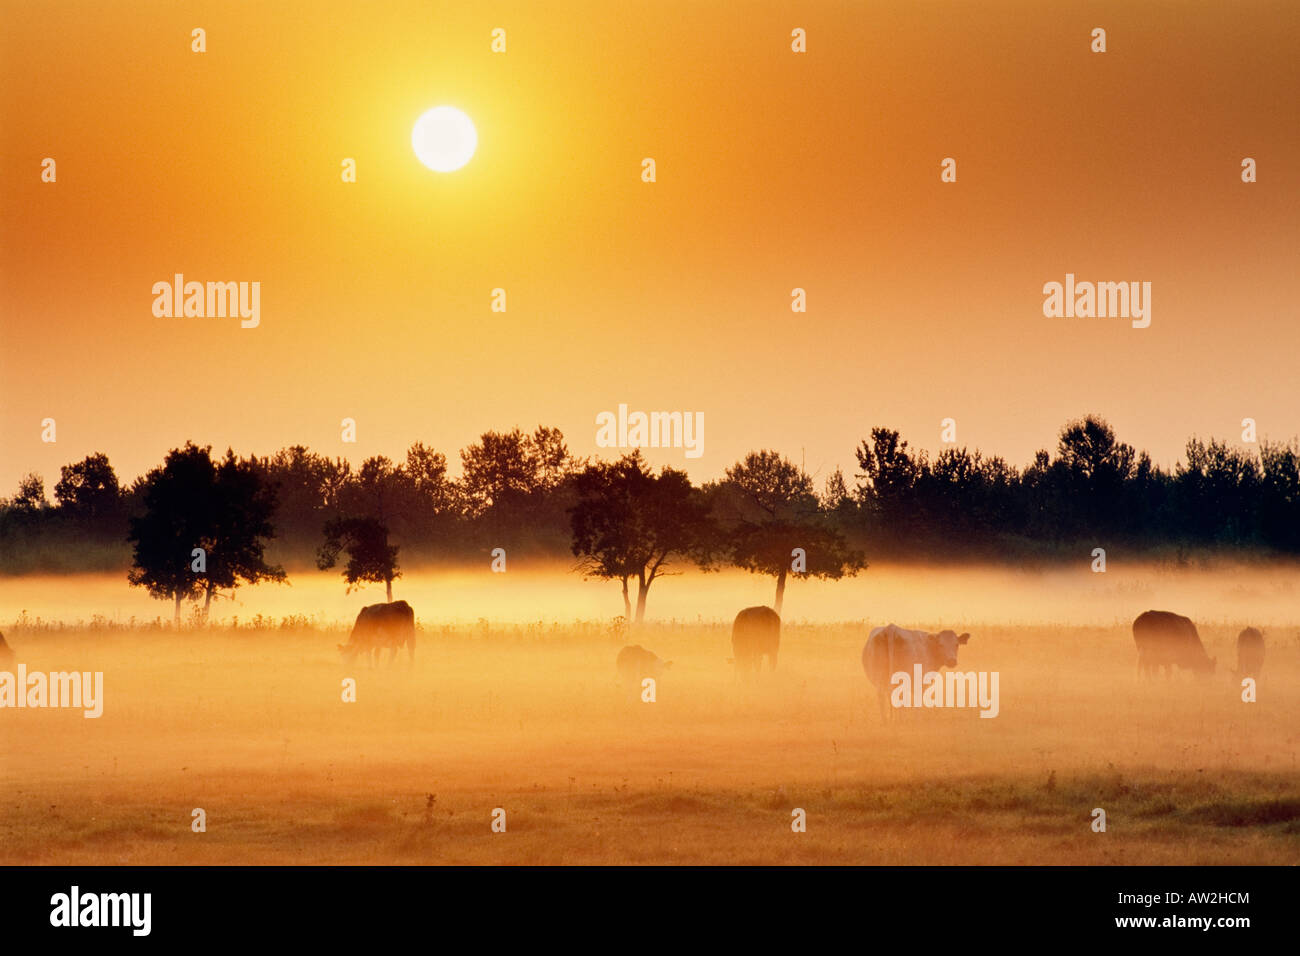 Cattle in fog at sunrise near Millet, Alberta, Canada - Stock Image